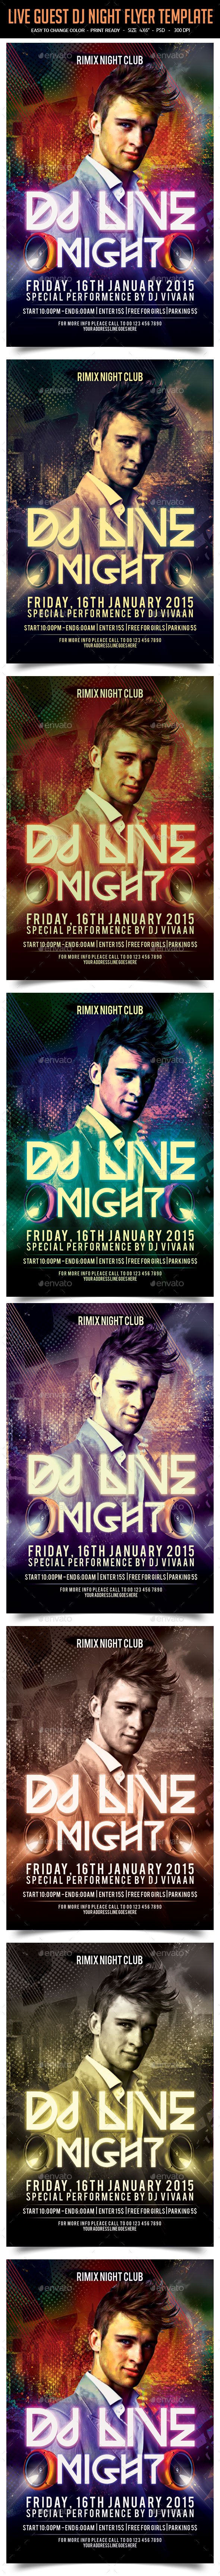 Live Dj Night Party Flyer Template - Clubs & Parties Events